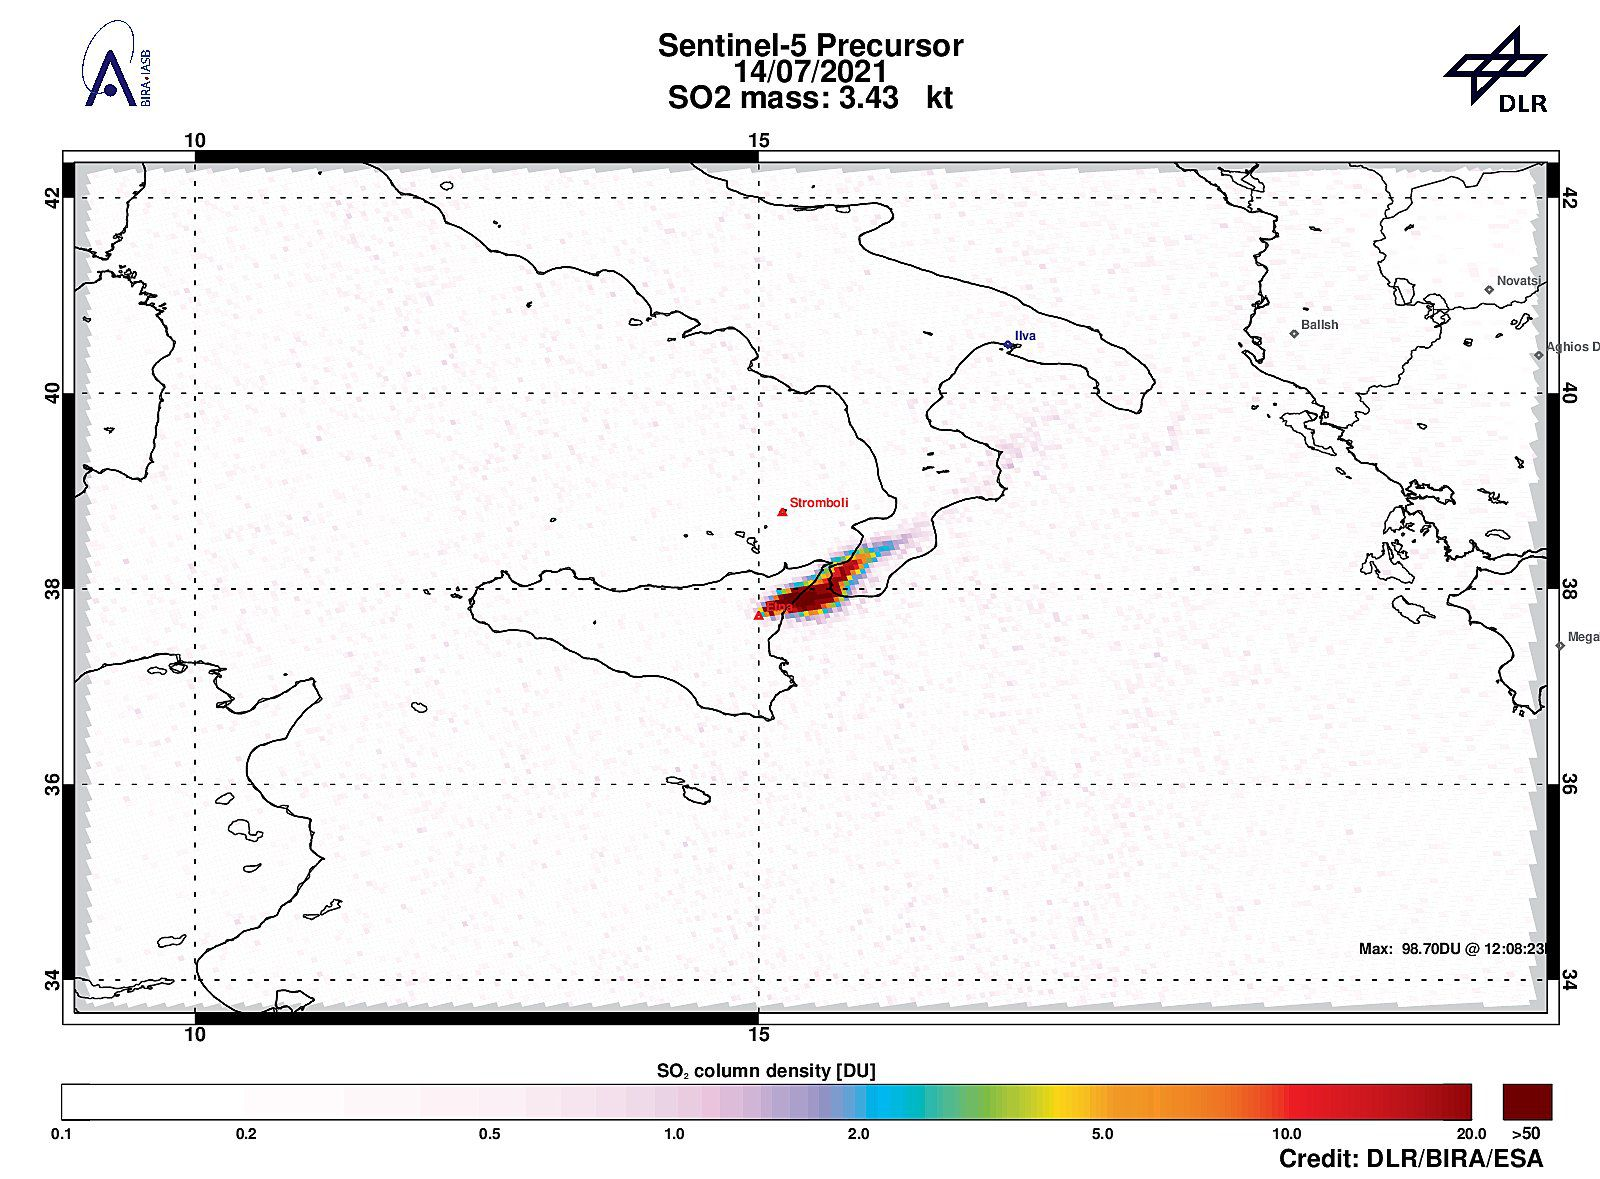 Etna - strong SO2 signal between Etna and Calabria with 98.70DU of SO2. - Sentinel-5P Tropomi from 07.14.2021 - also notice the Stromboli emission